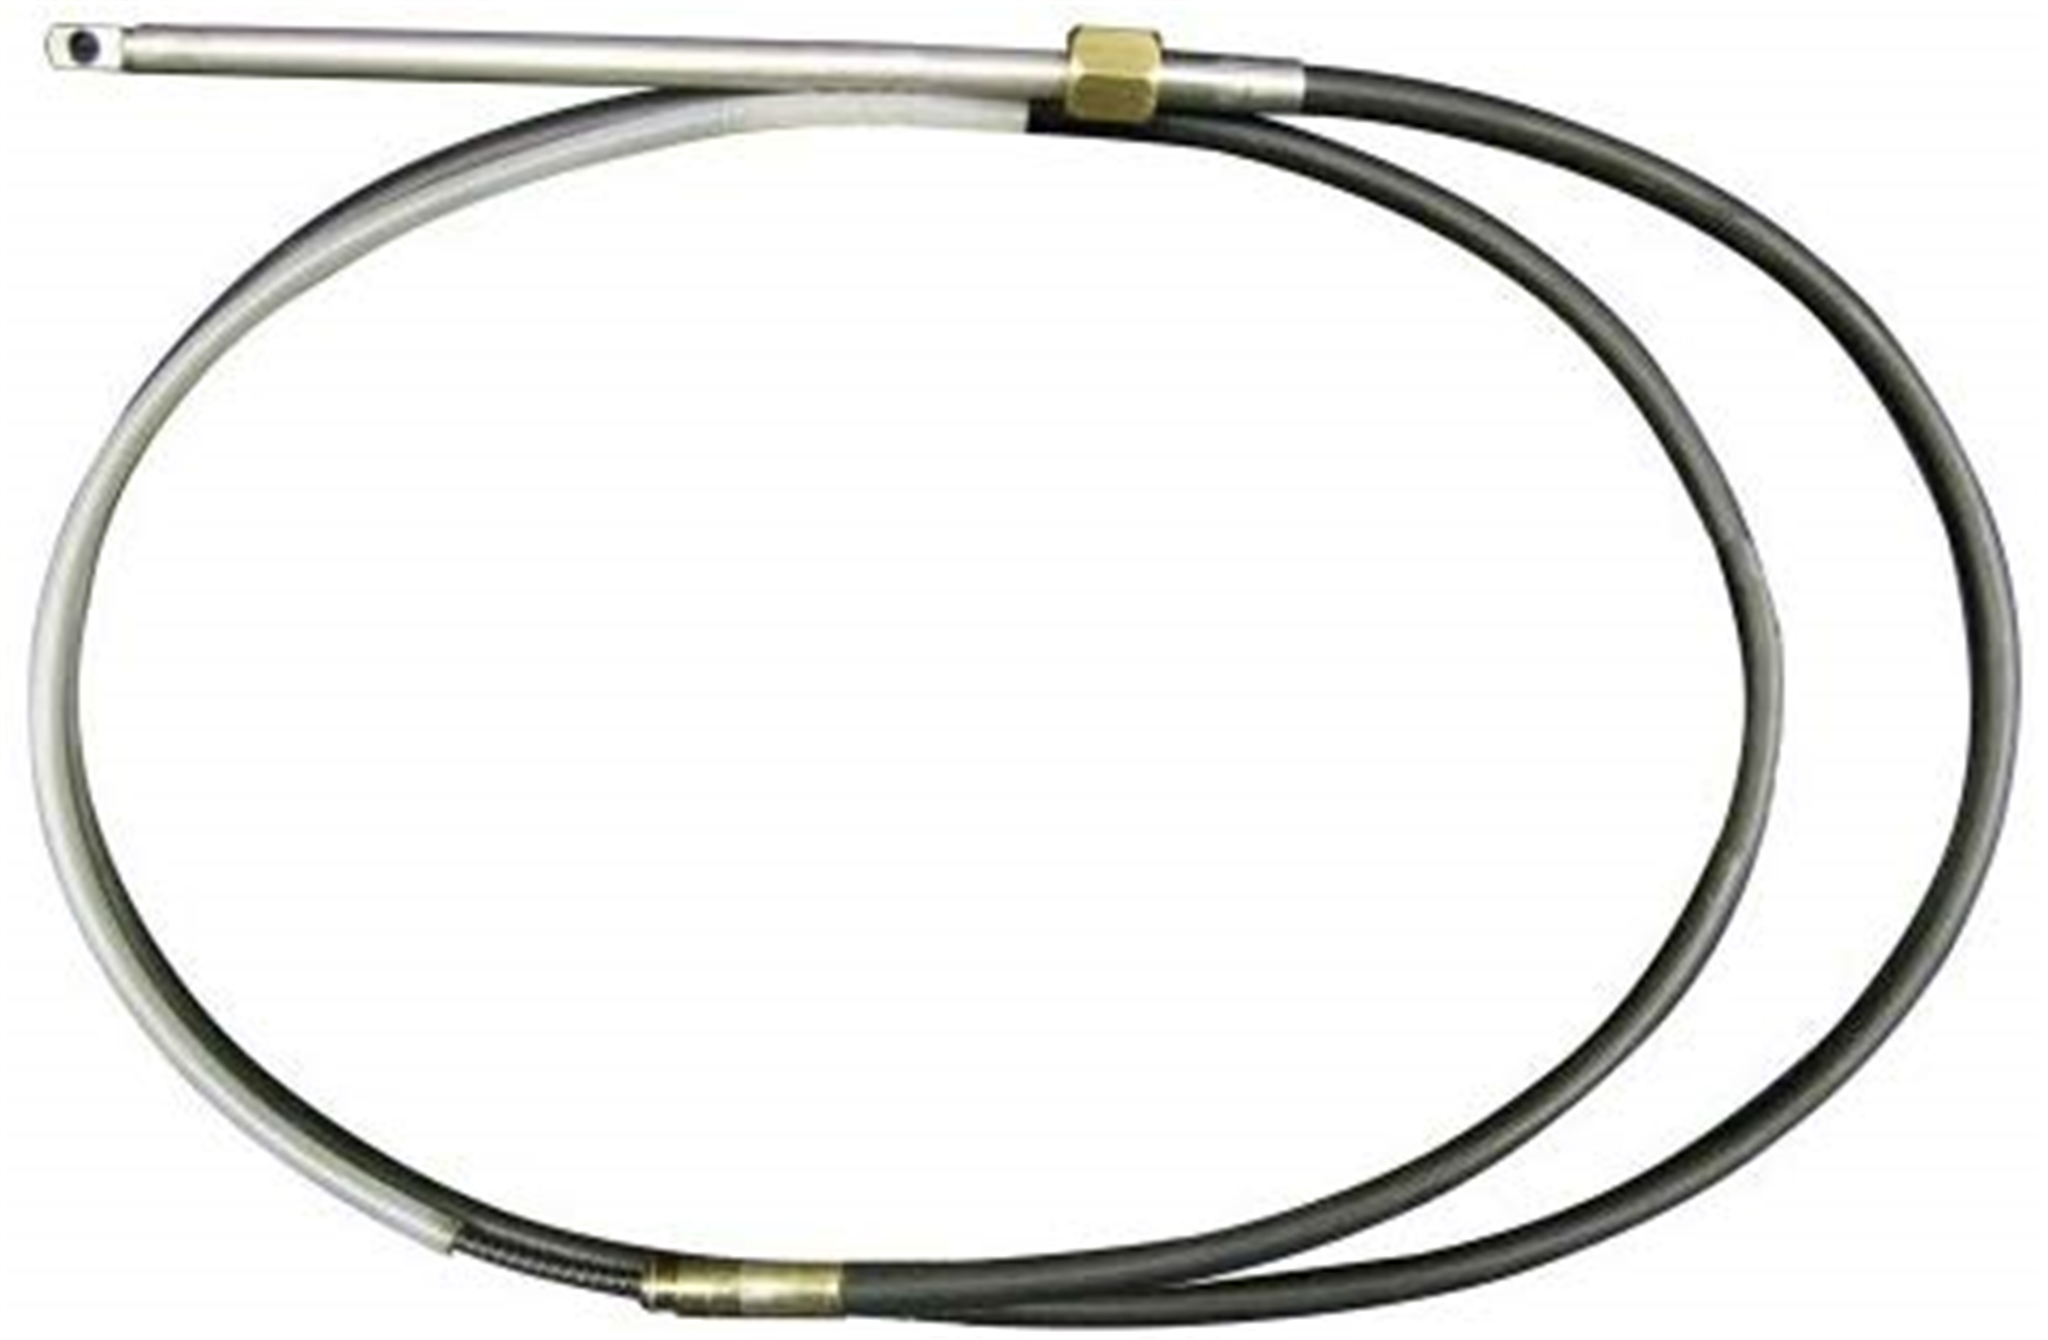 M66 Quick Connect Steering Cable 22 Feet